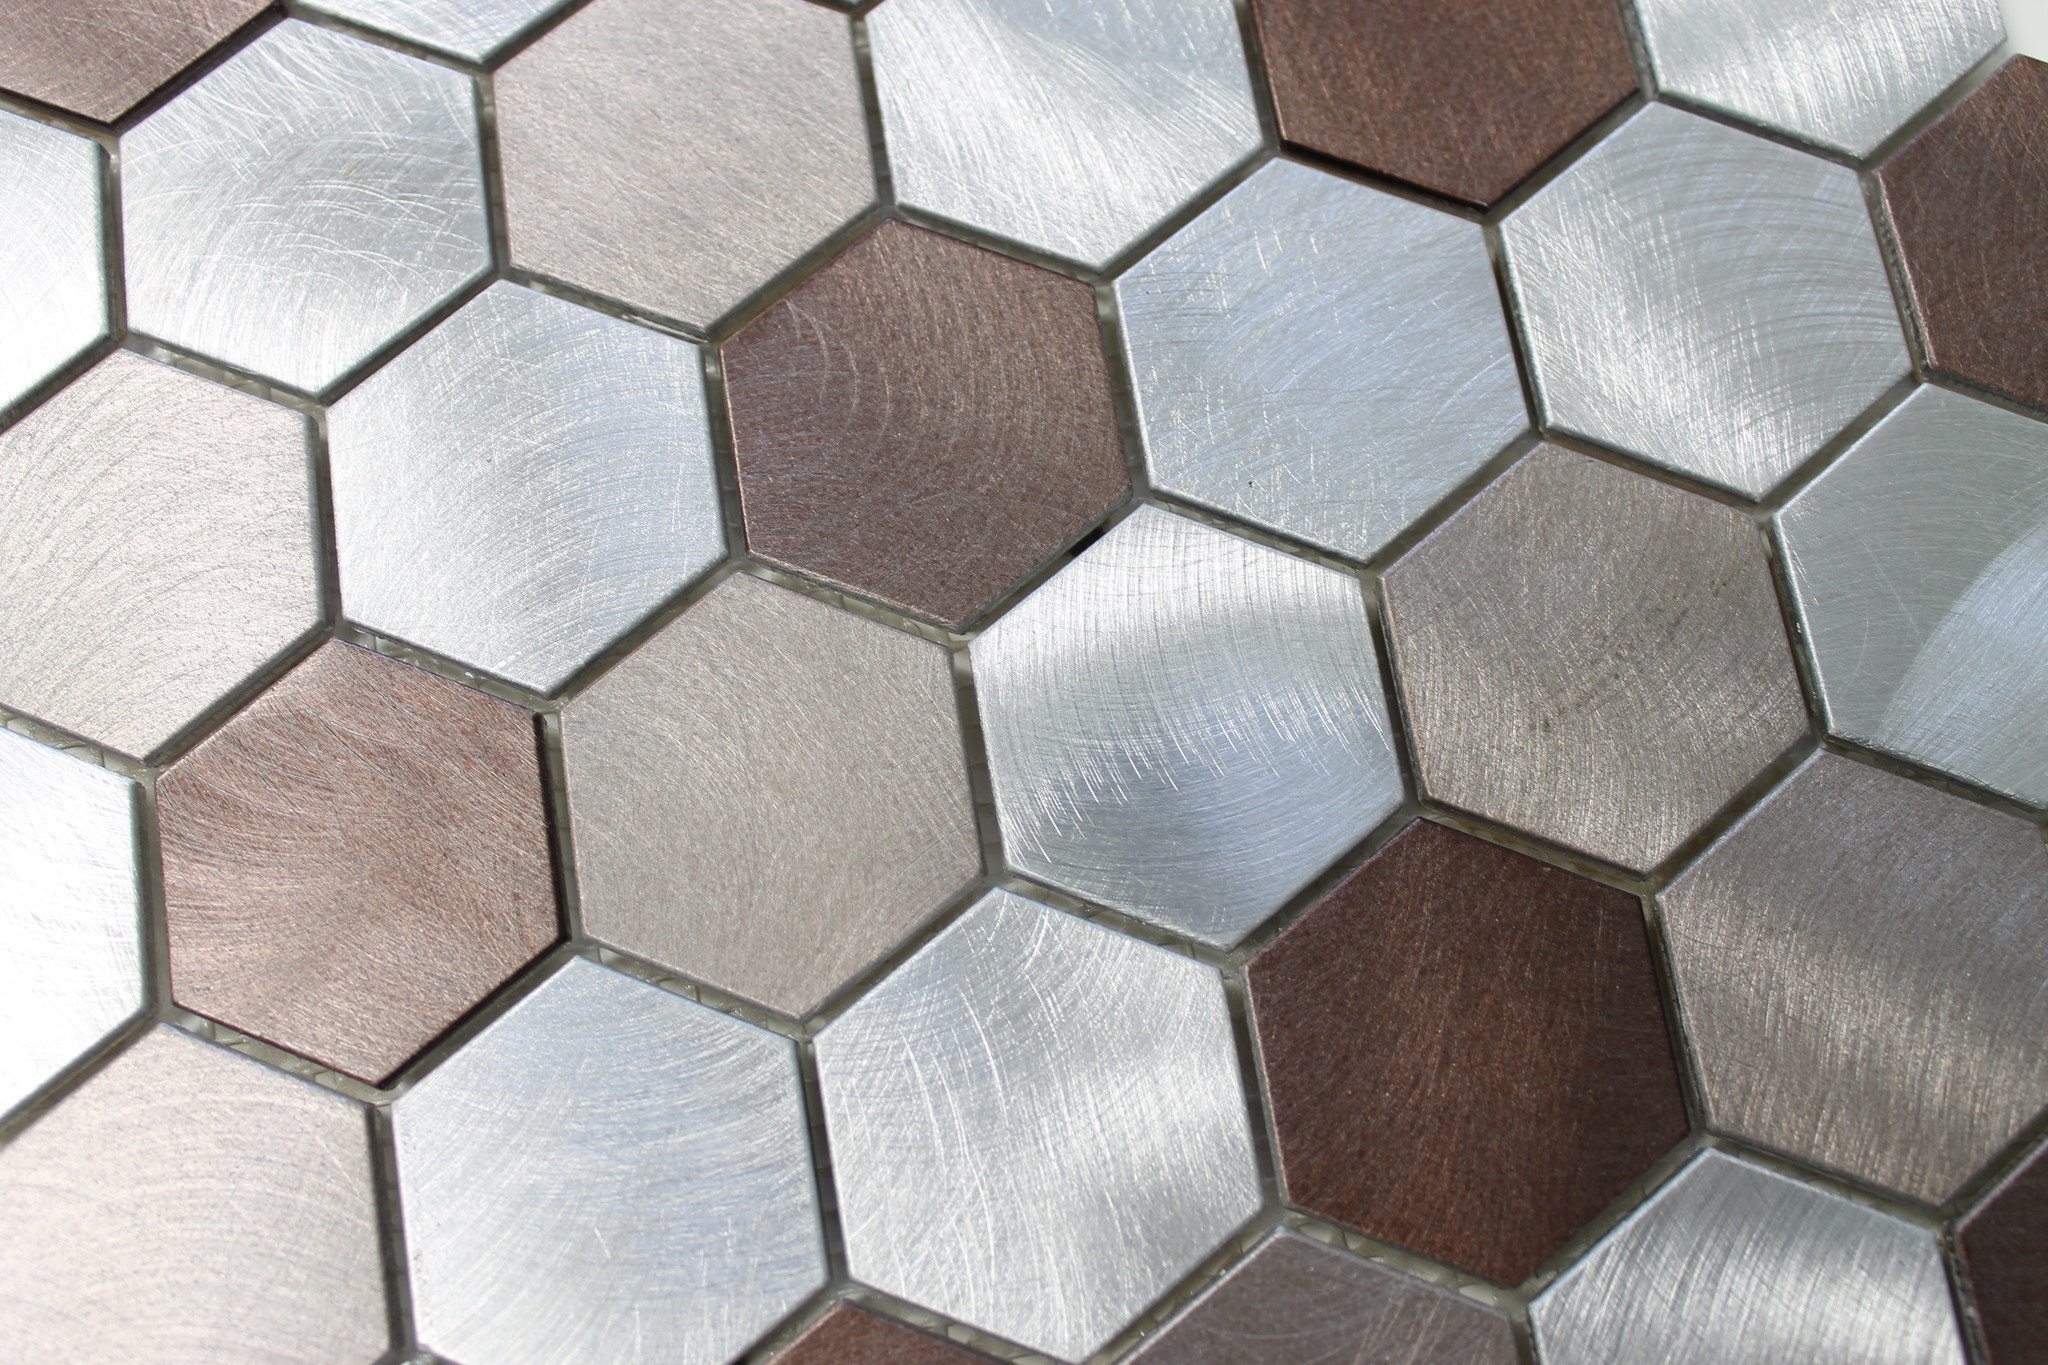 10 Square Feet - Casablanca Aluminum Metal Hexagon Mosaic Tiles by Rocky Point Tile